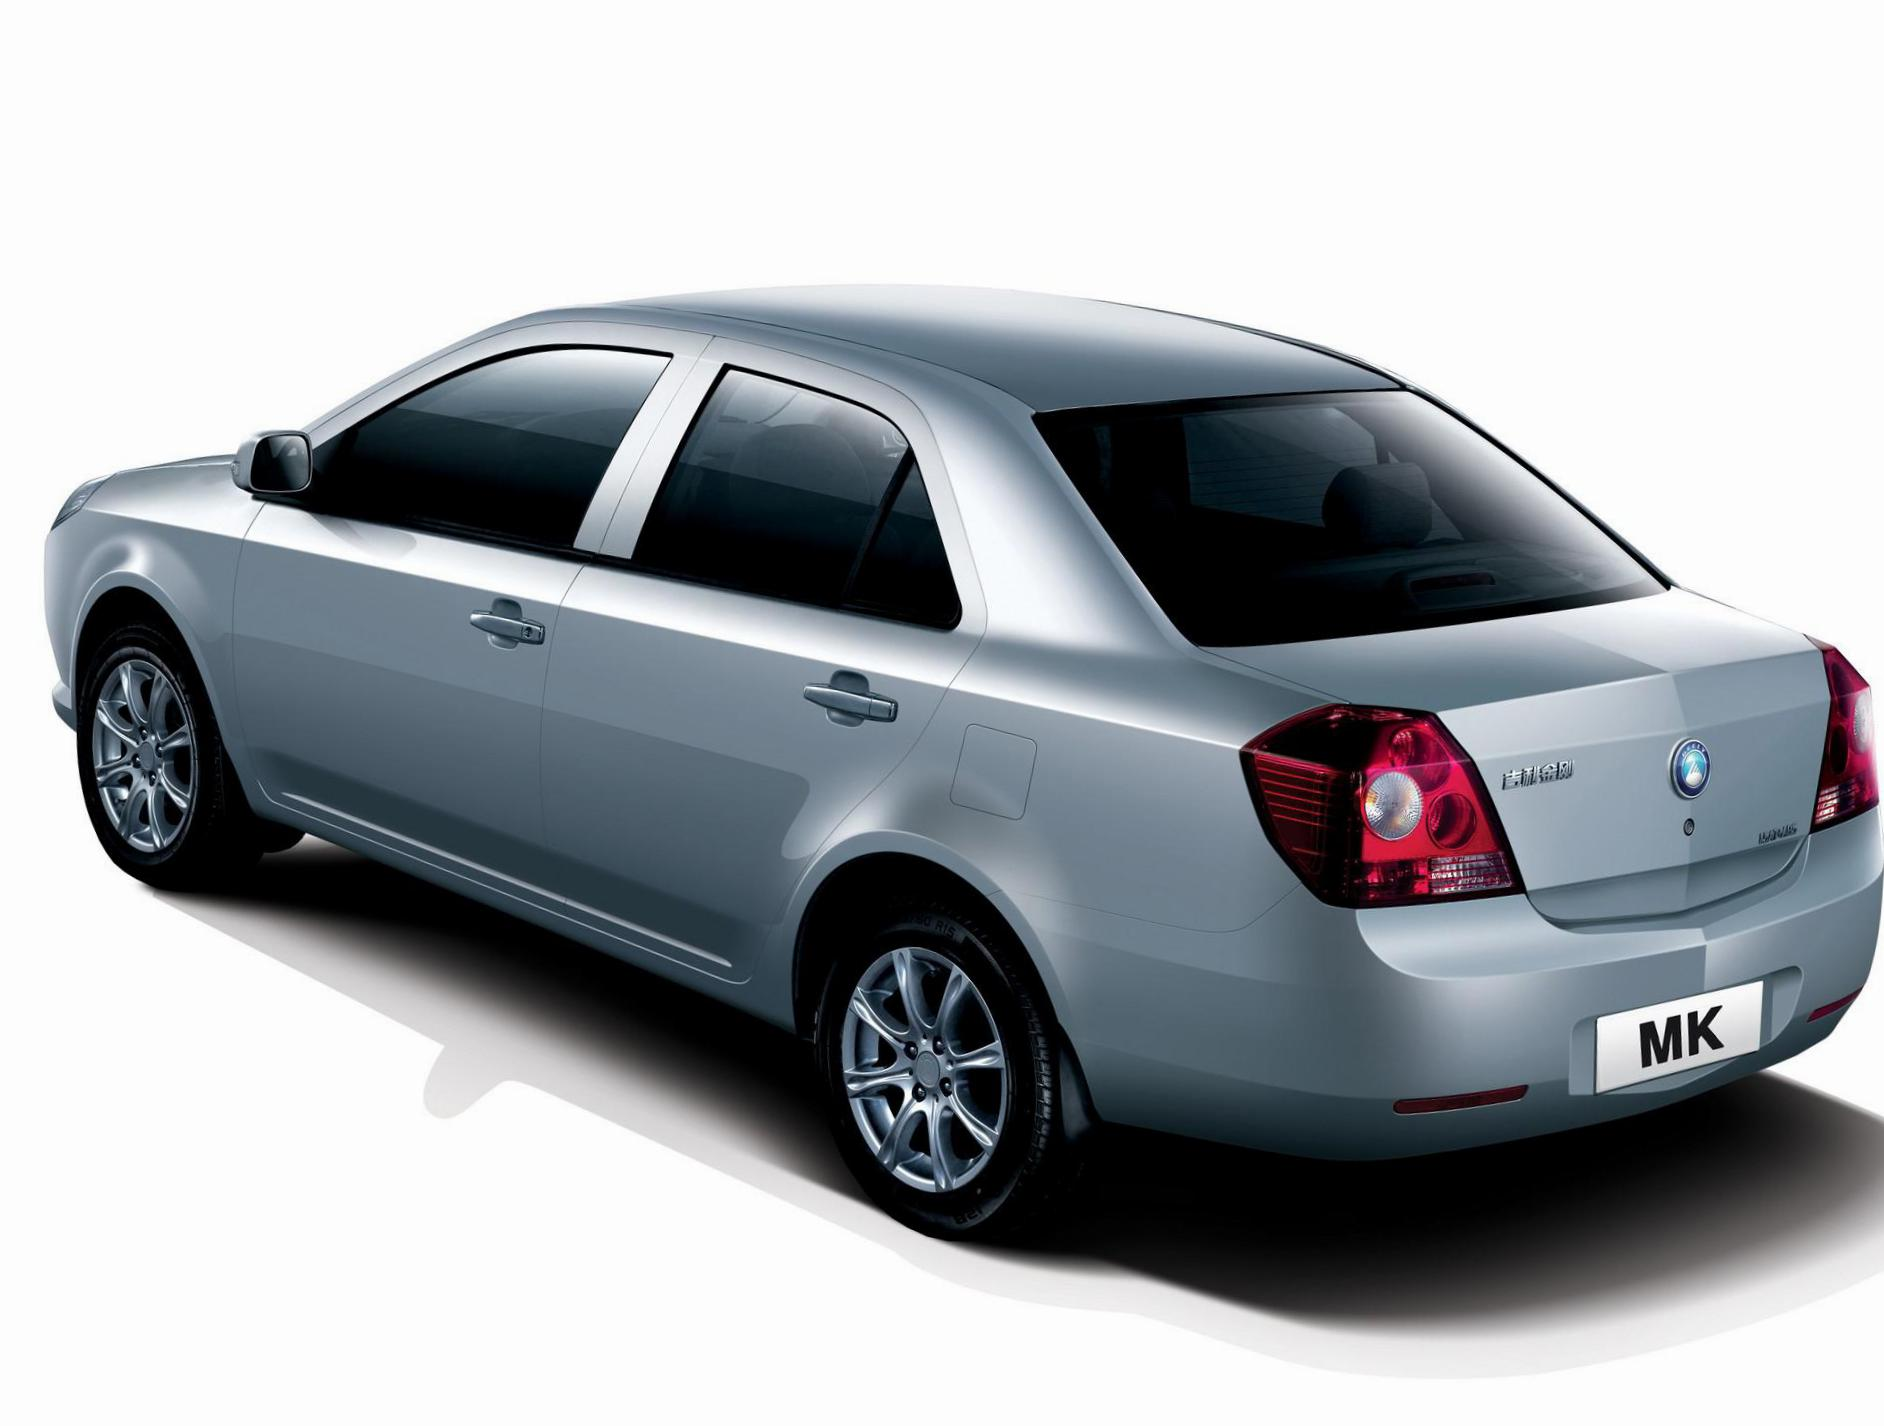 Geely CK models hatchback